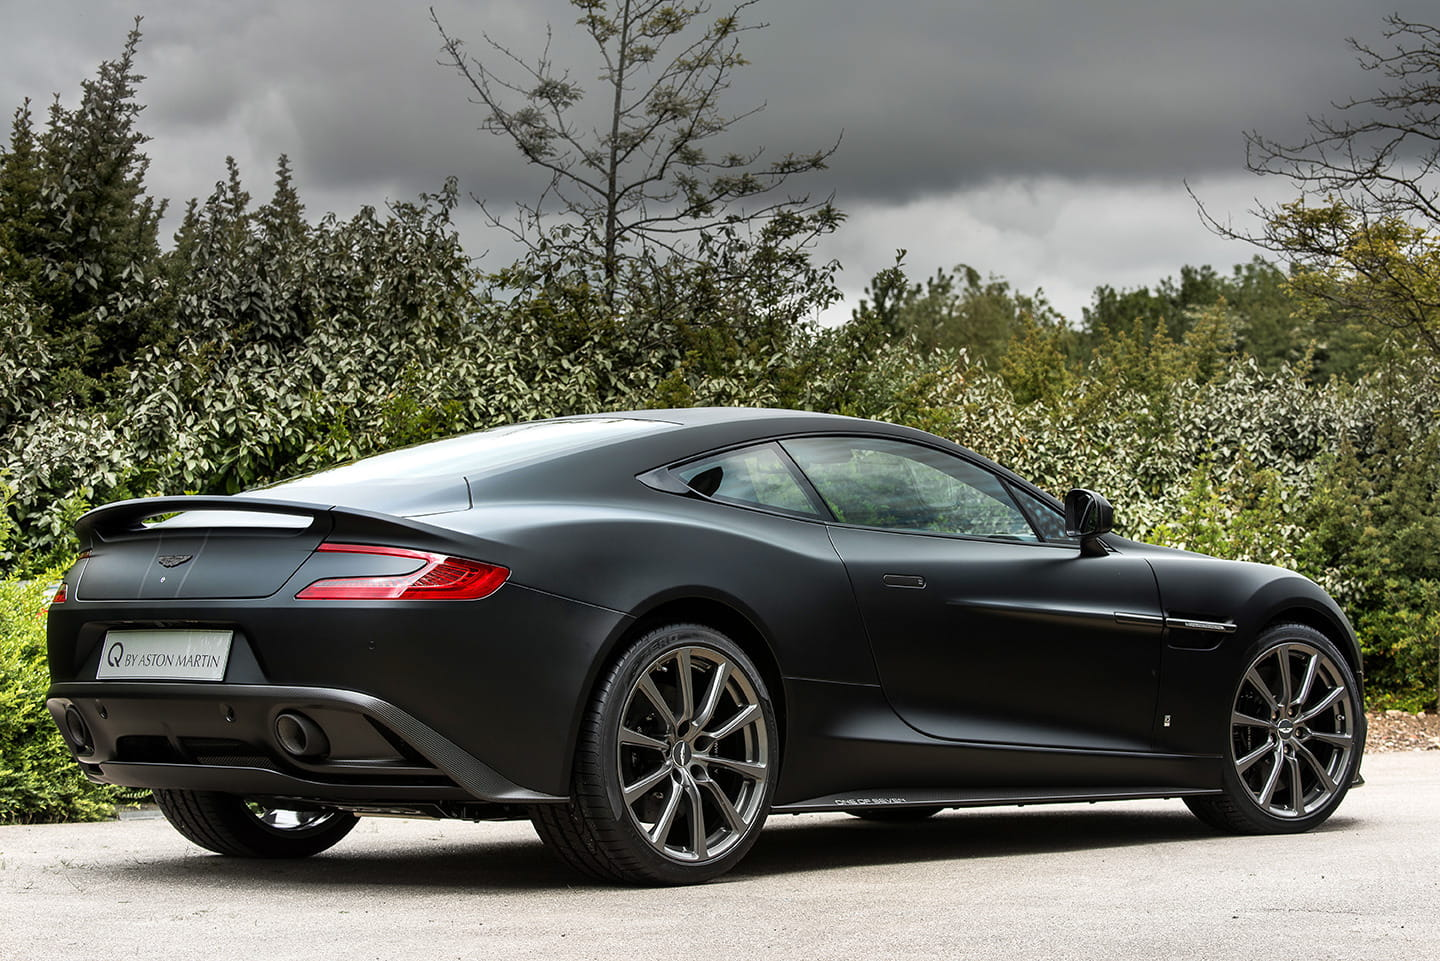 aston-martin-vanquish-one-of-seven-02-1440px